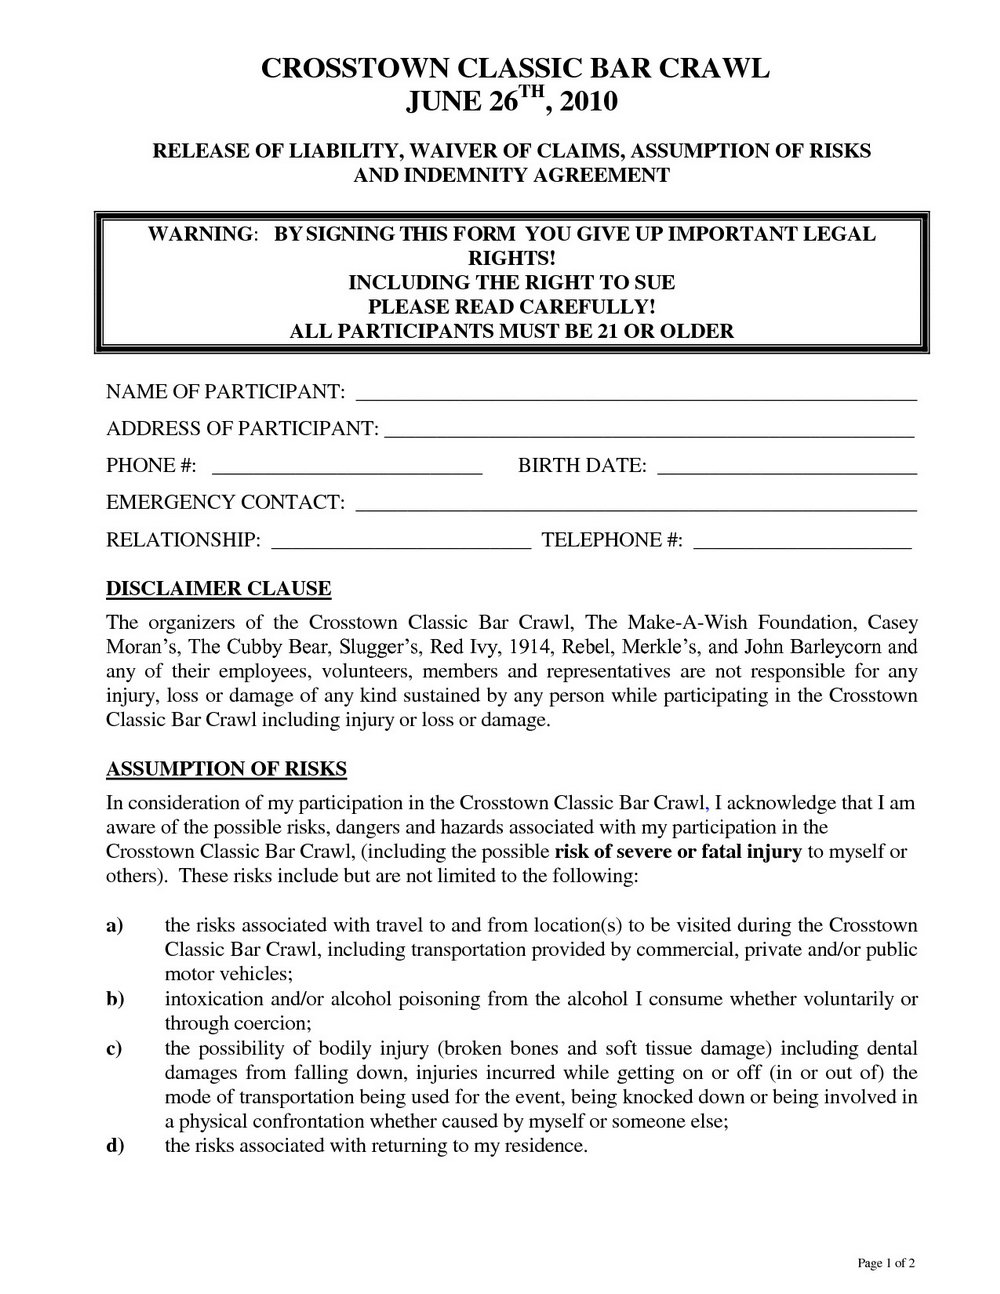 Release Of Liability Form Template California